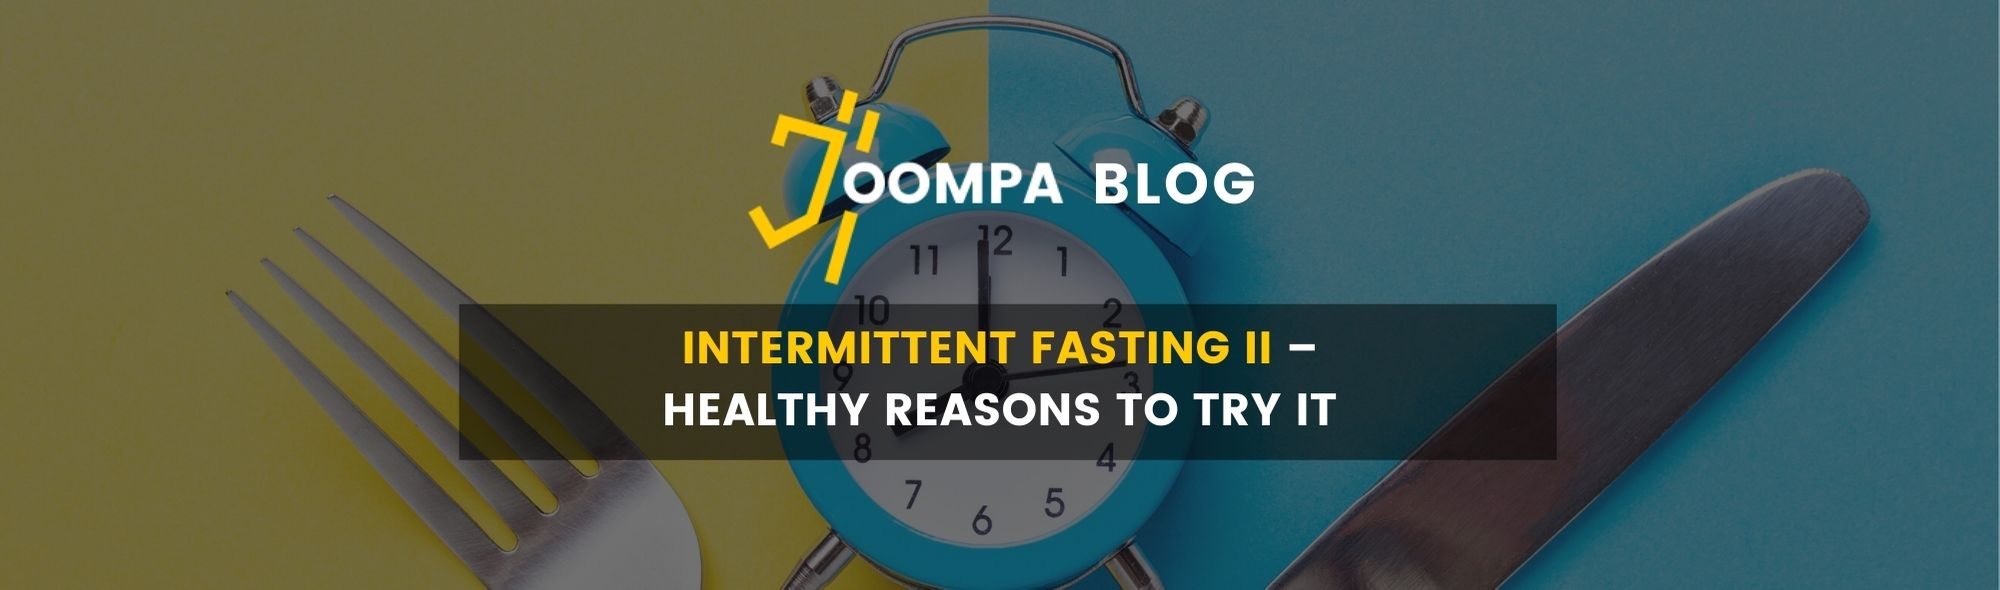 Intermittent Fasting II - Healthy reasons to try it